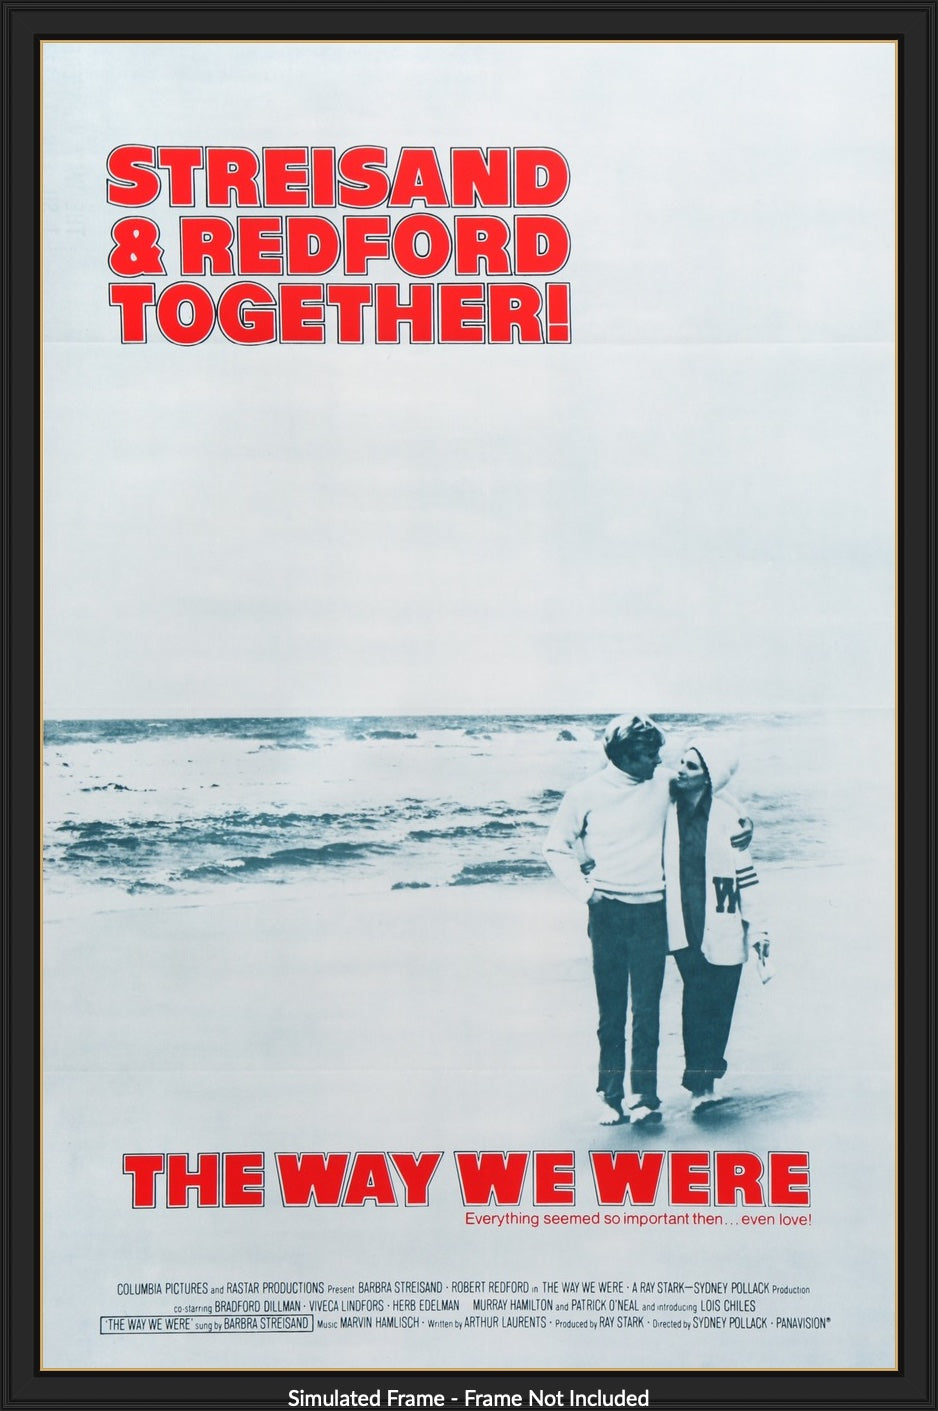 The way we were Robert Redford Vintage movie poster print